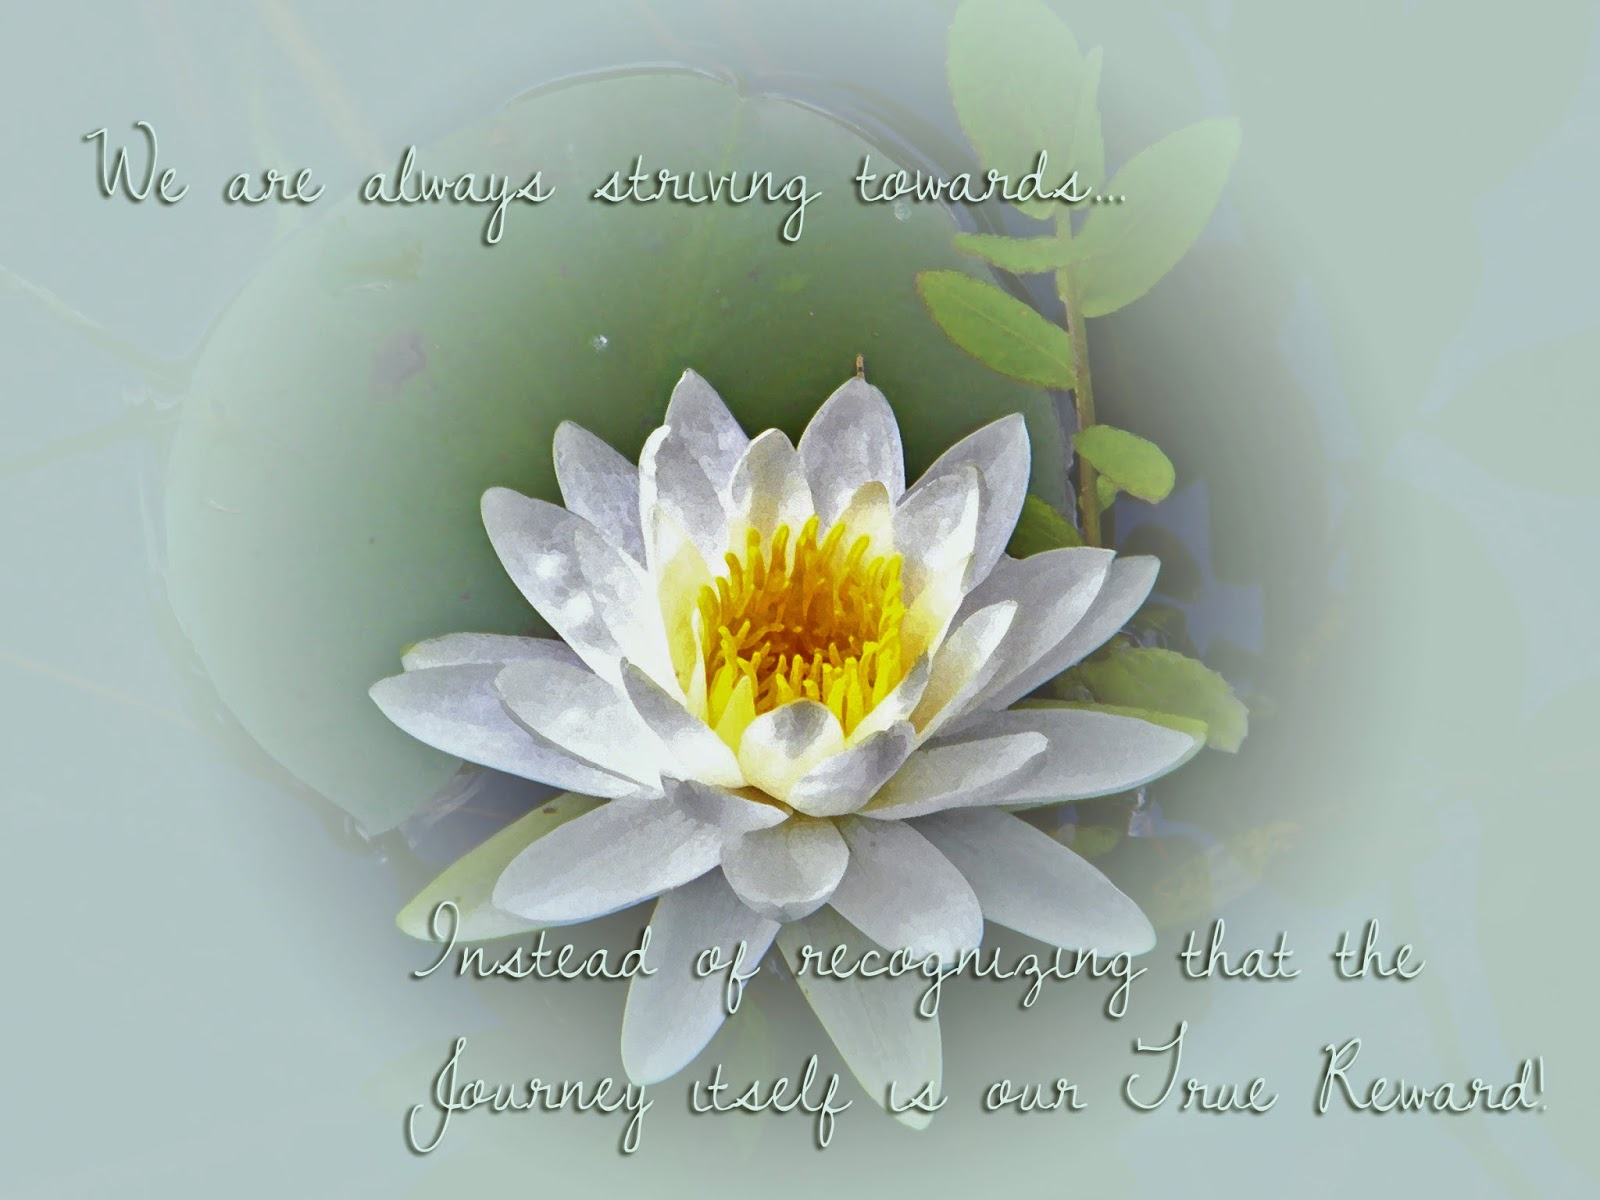 The Journey-- photo of water lily with inspirational message